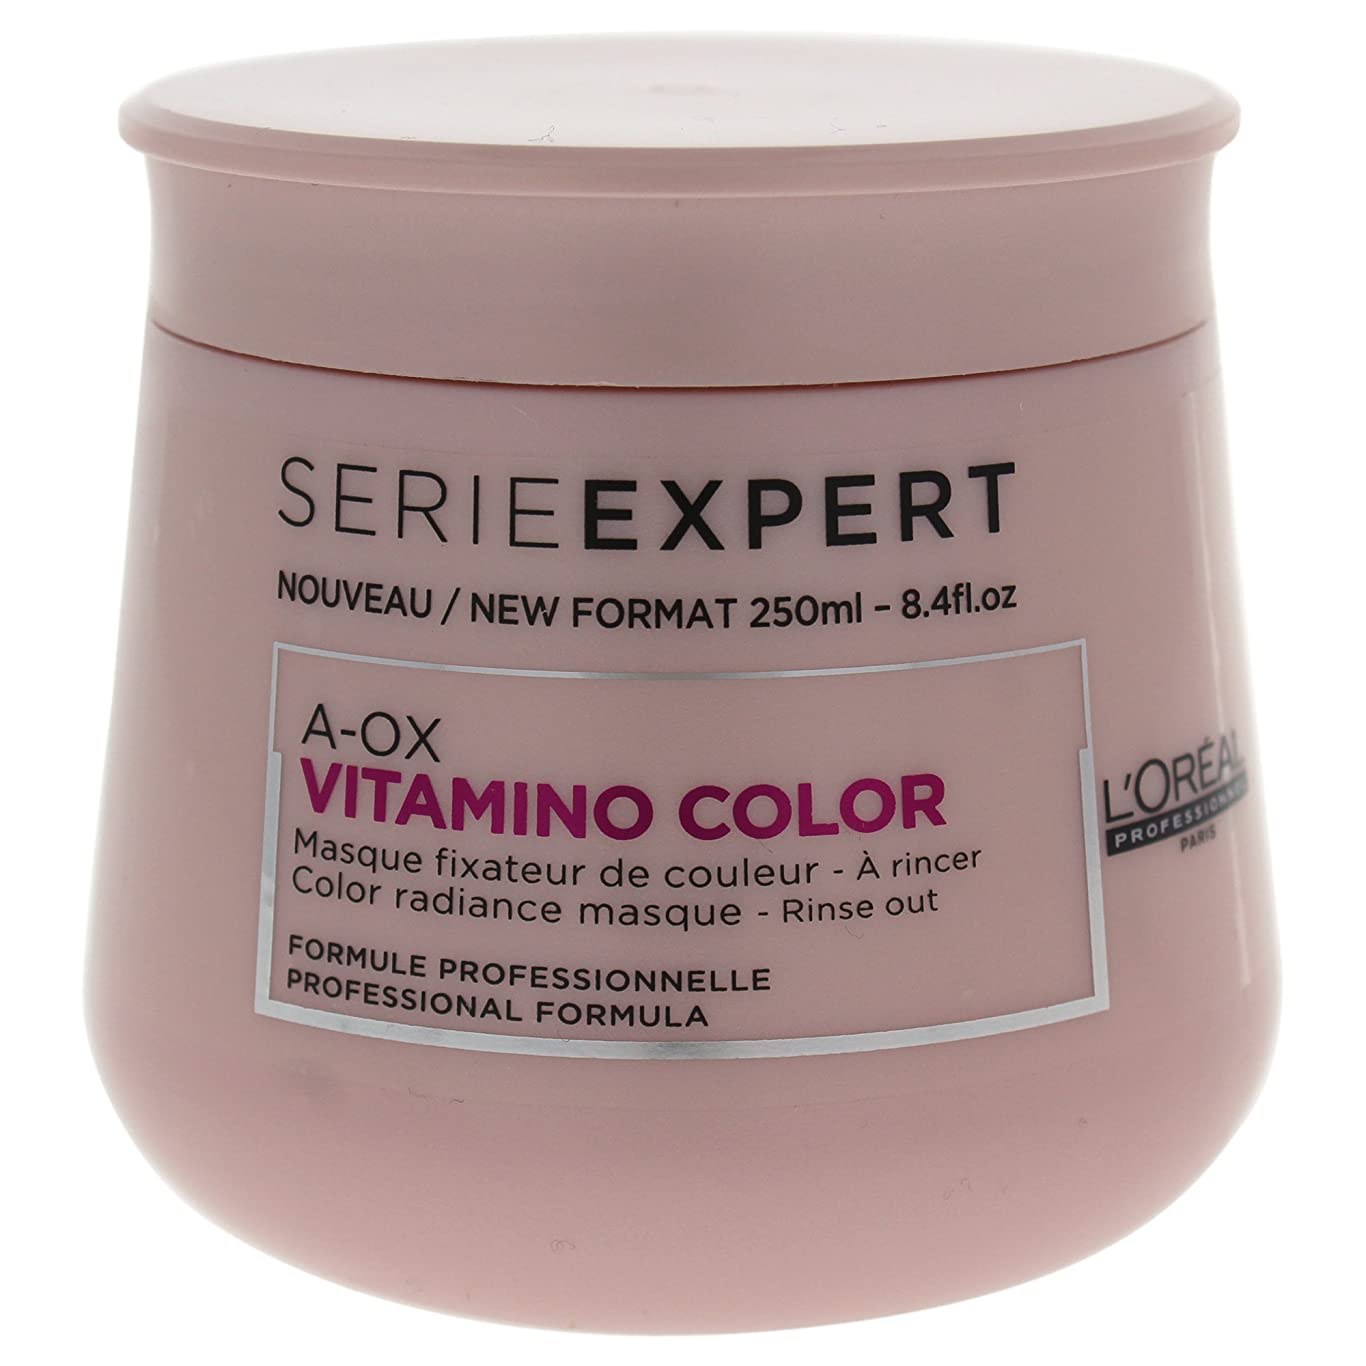 パウダーグローバル引き算L'Oreal Serie Expert A-OX VITAMINO COLOR Color Radiance Masque 250 ml [並行輸入品]